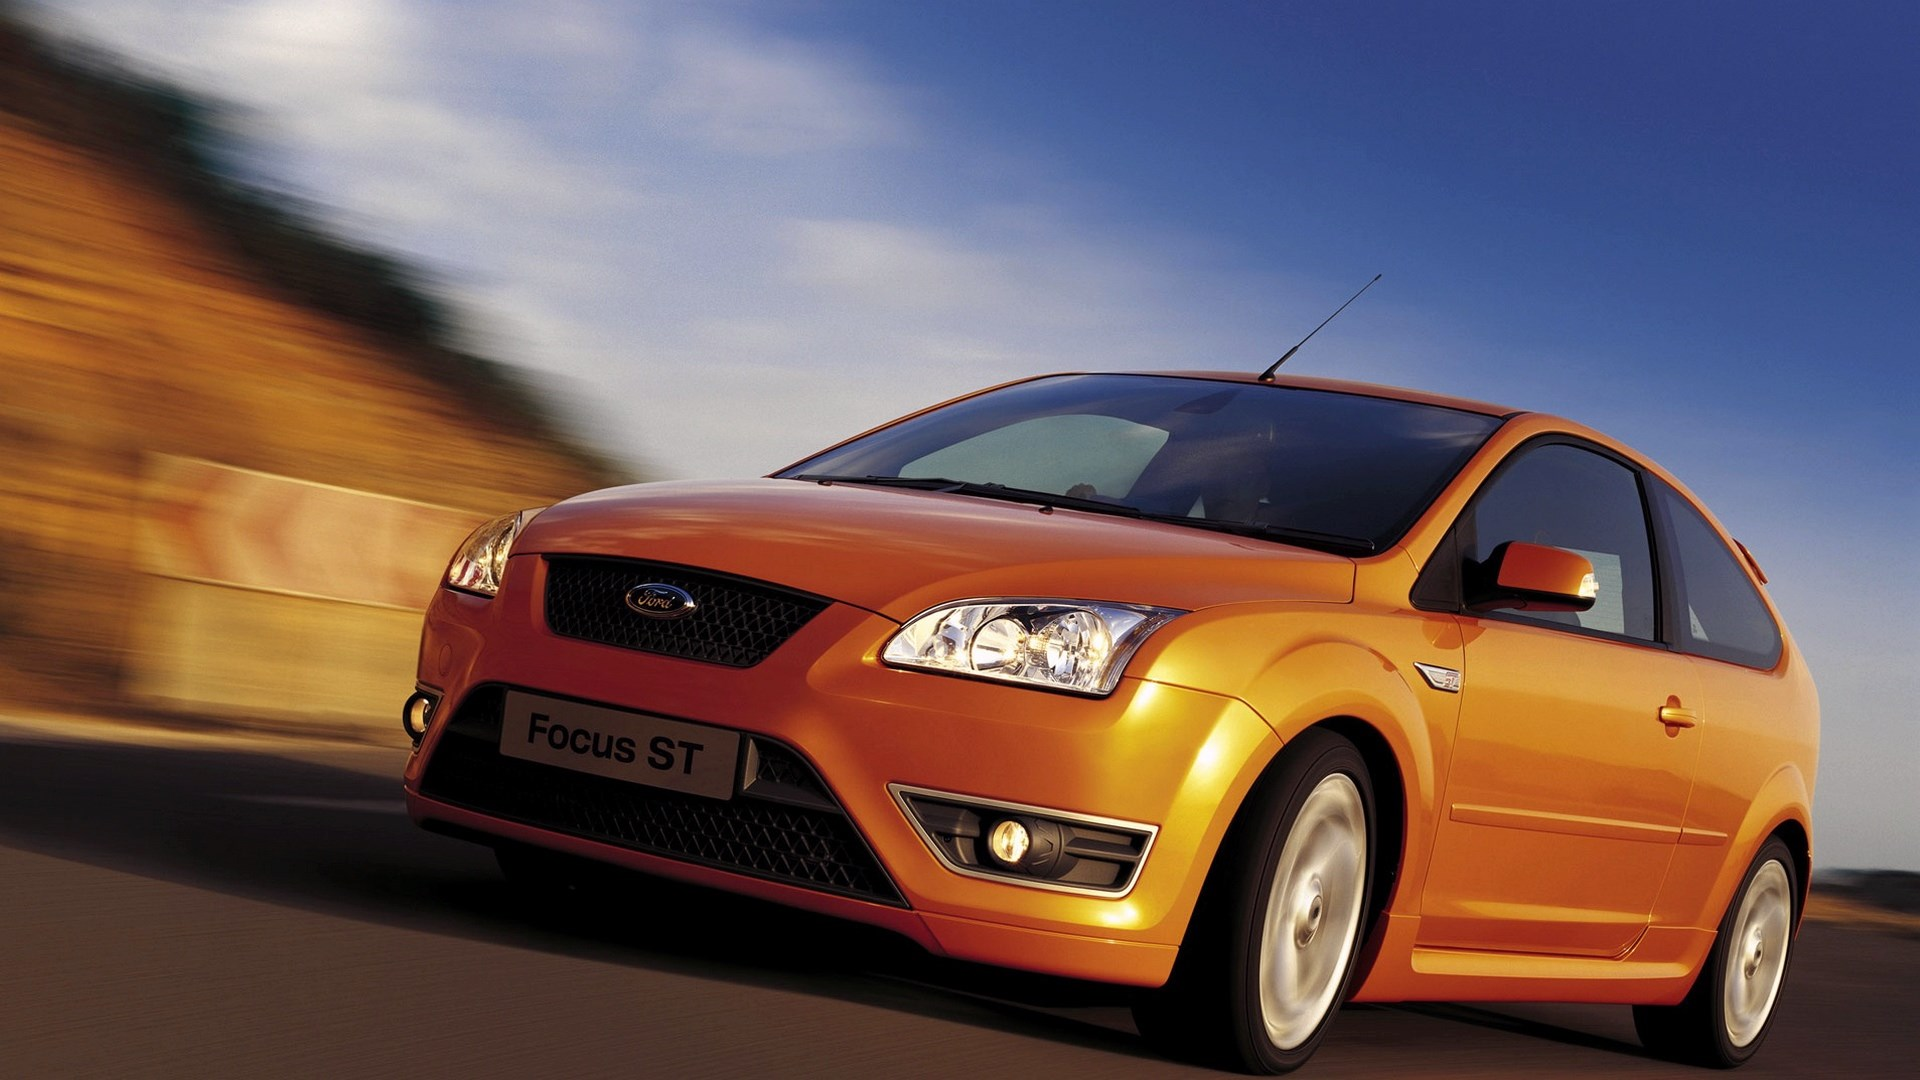 1920x1080-HD-Widescreen-ford-focus-wallpaper-wp340844